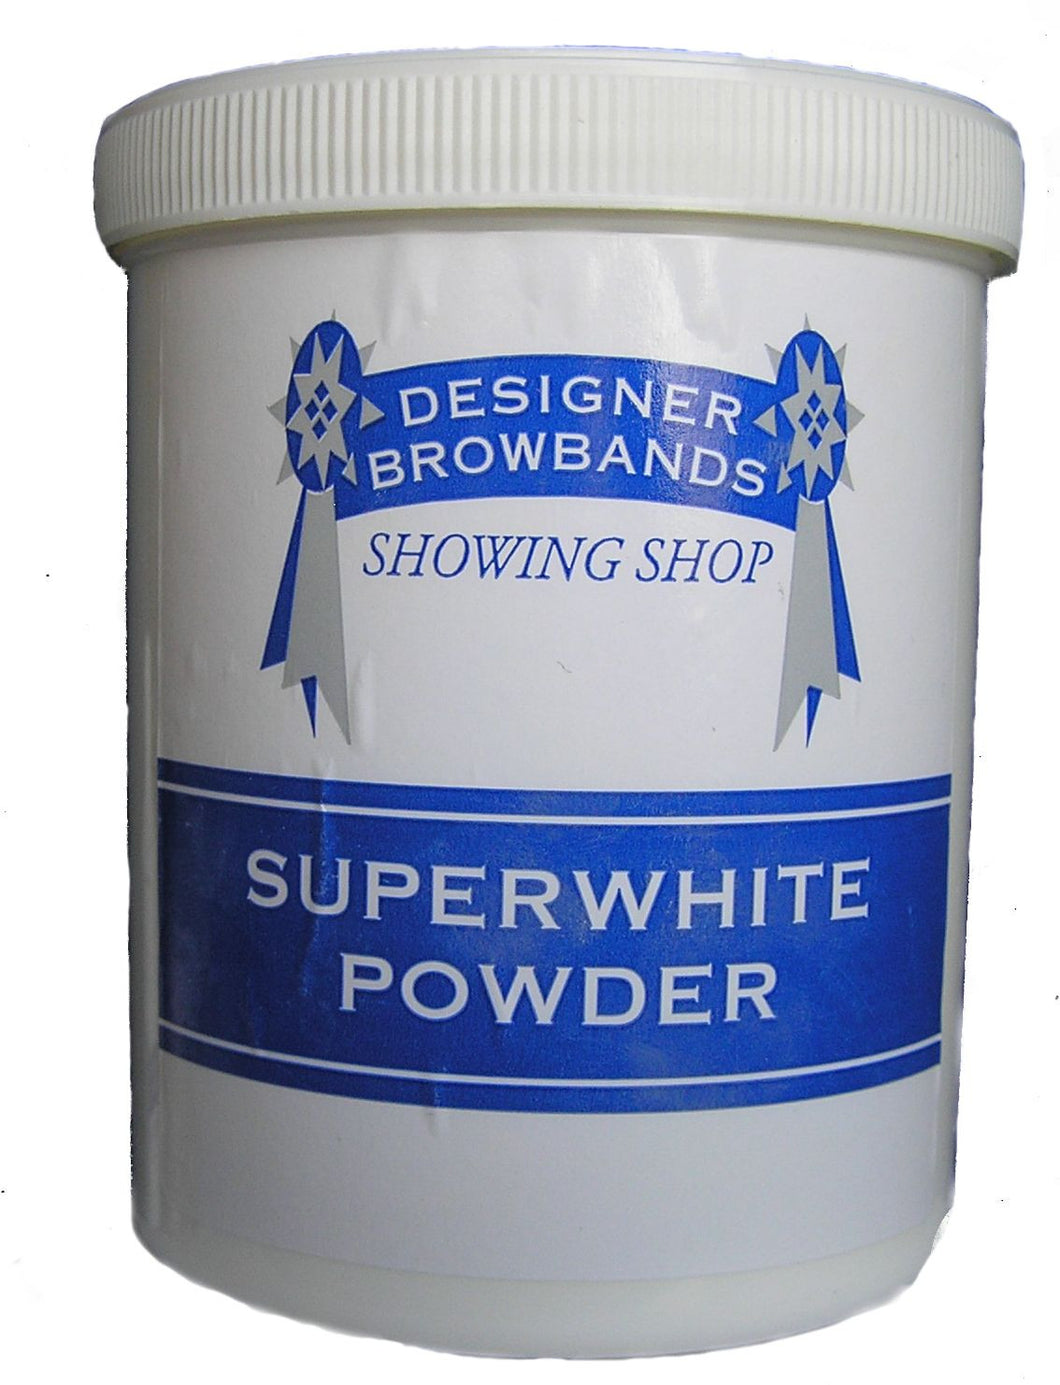 Superwhite Powder